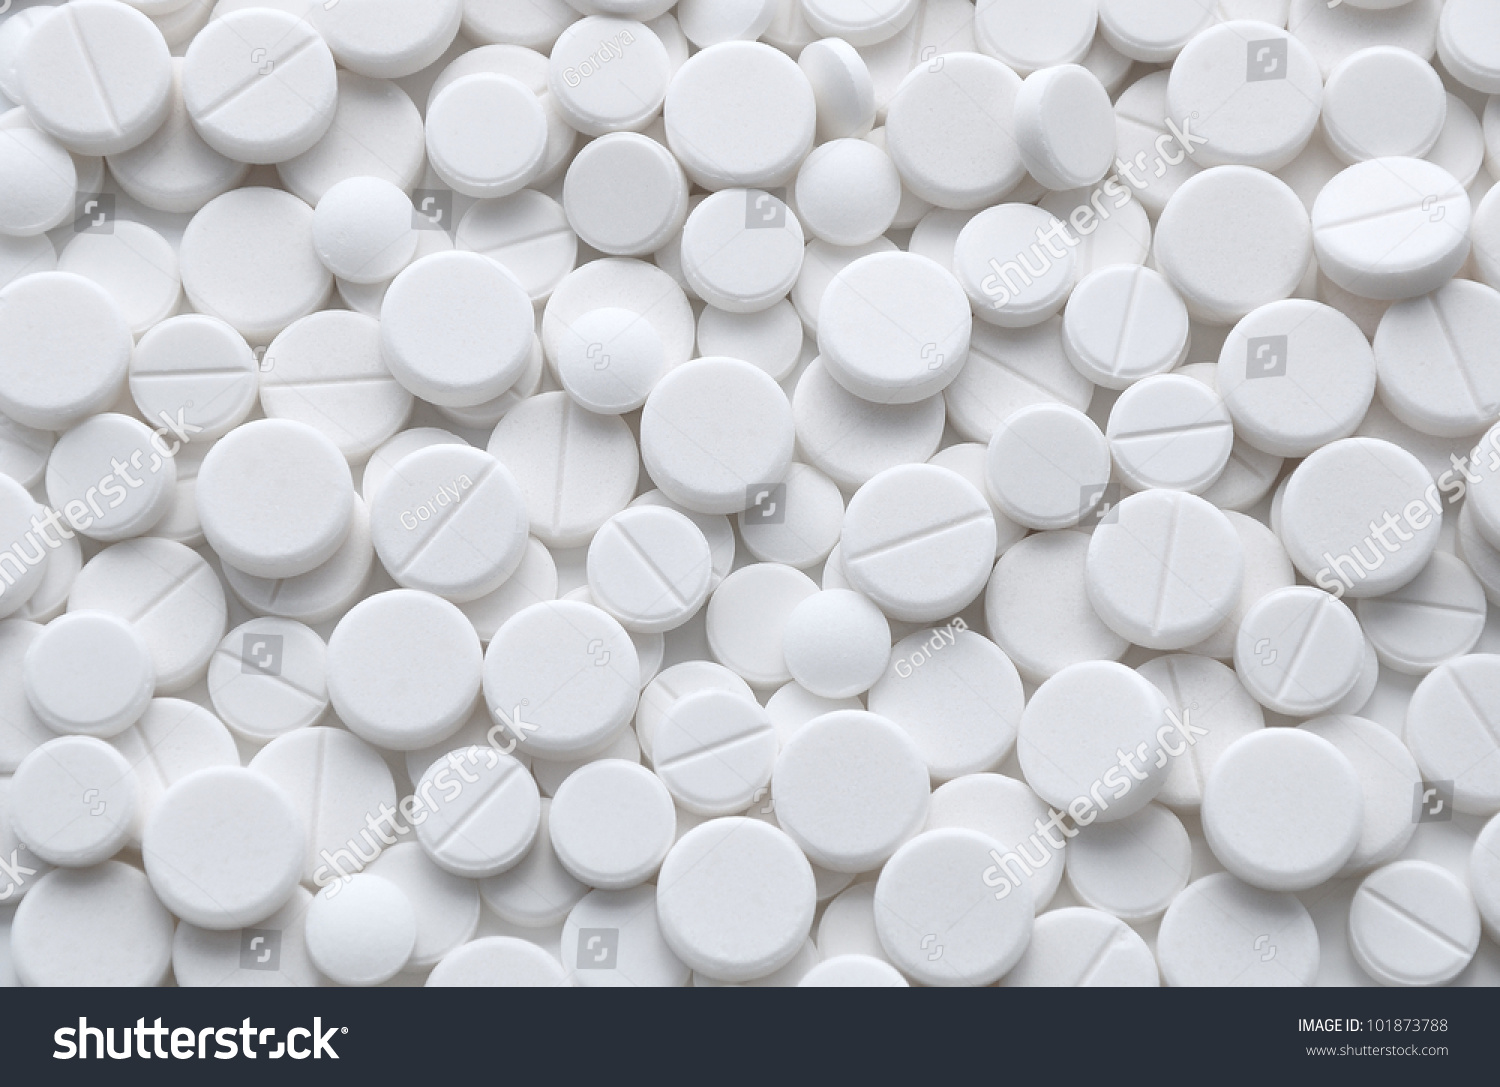 white pills tablets background medicine objects stock